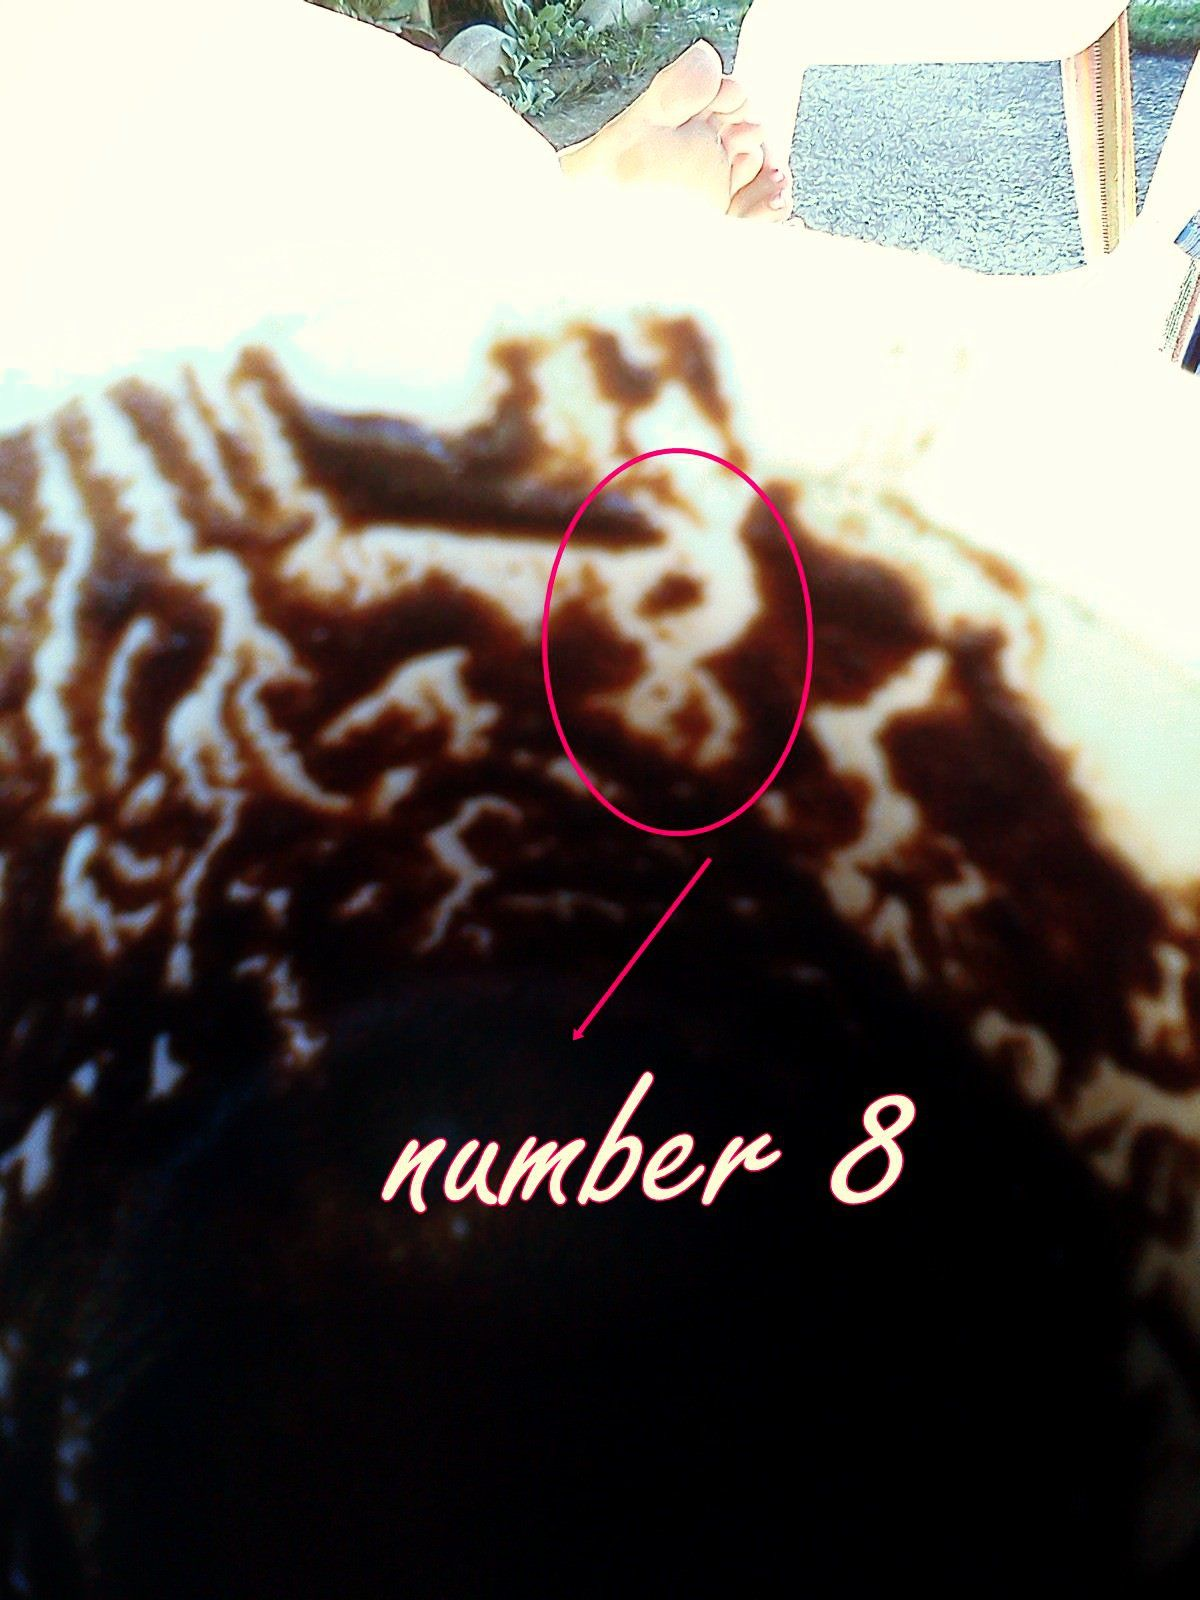 Number 8 in the cup httpcoffeereadingisfunwixcoffeeisfun number 8 in the cup httpcoffeereadingisfunwixcoffeeisfun number 8turkish coffeethe buycottarizona Image collections